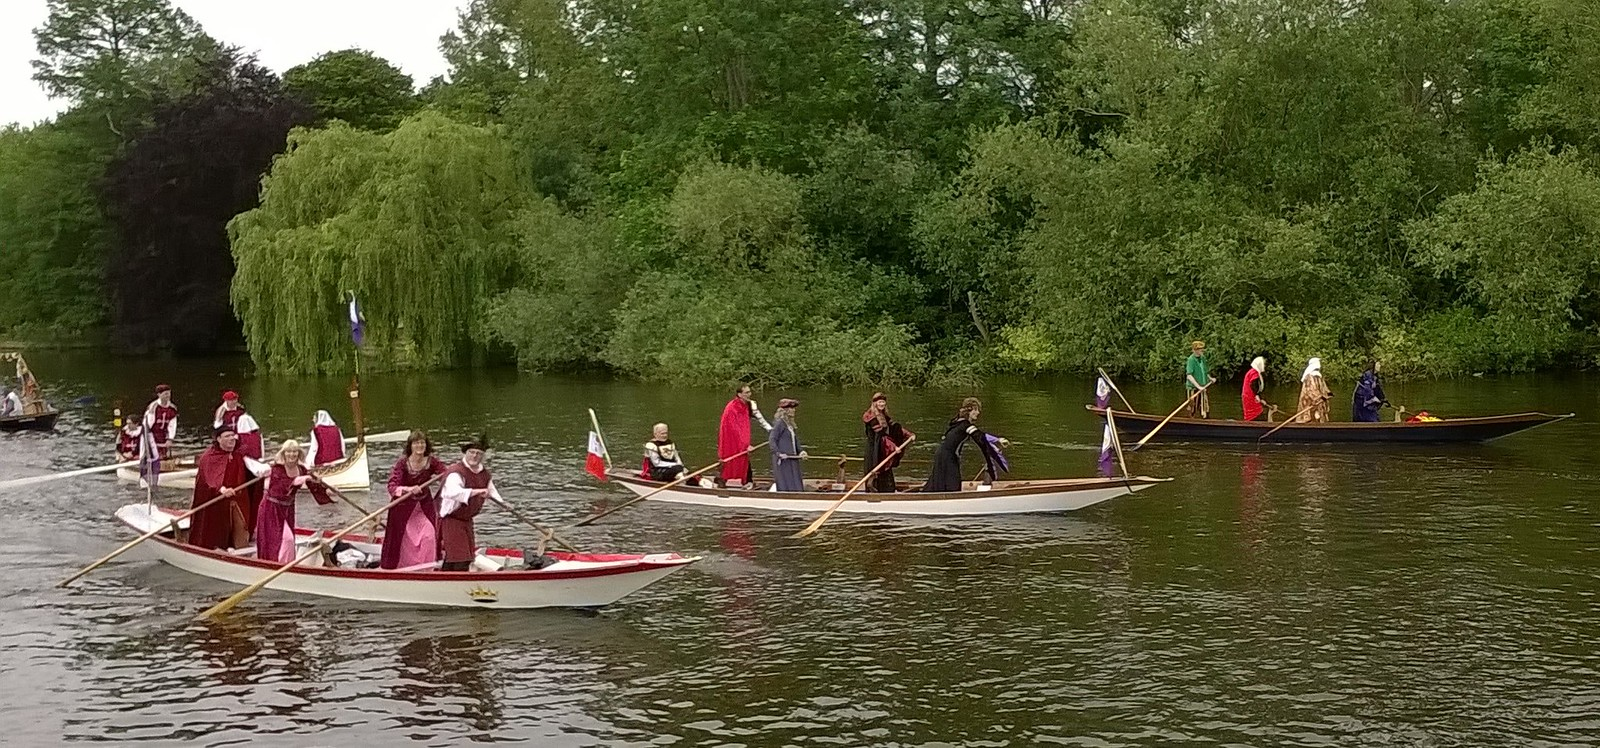 Britain's oldest rowing talent? Runnymede regatta